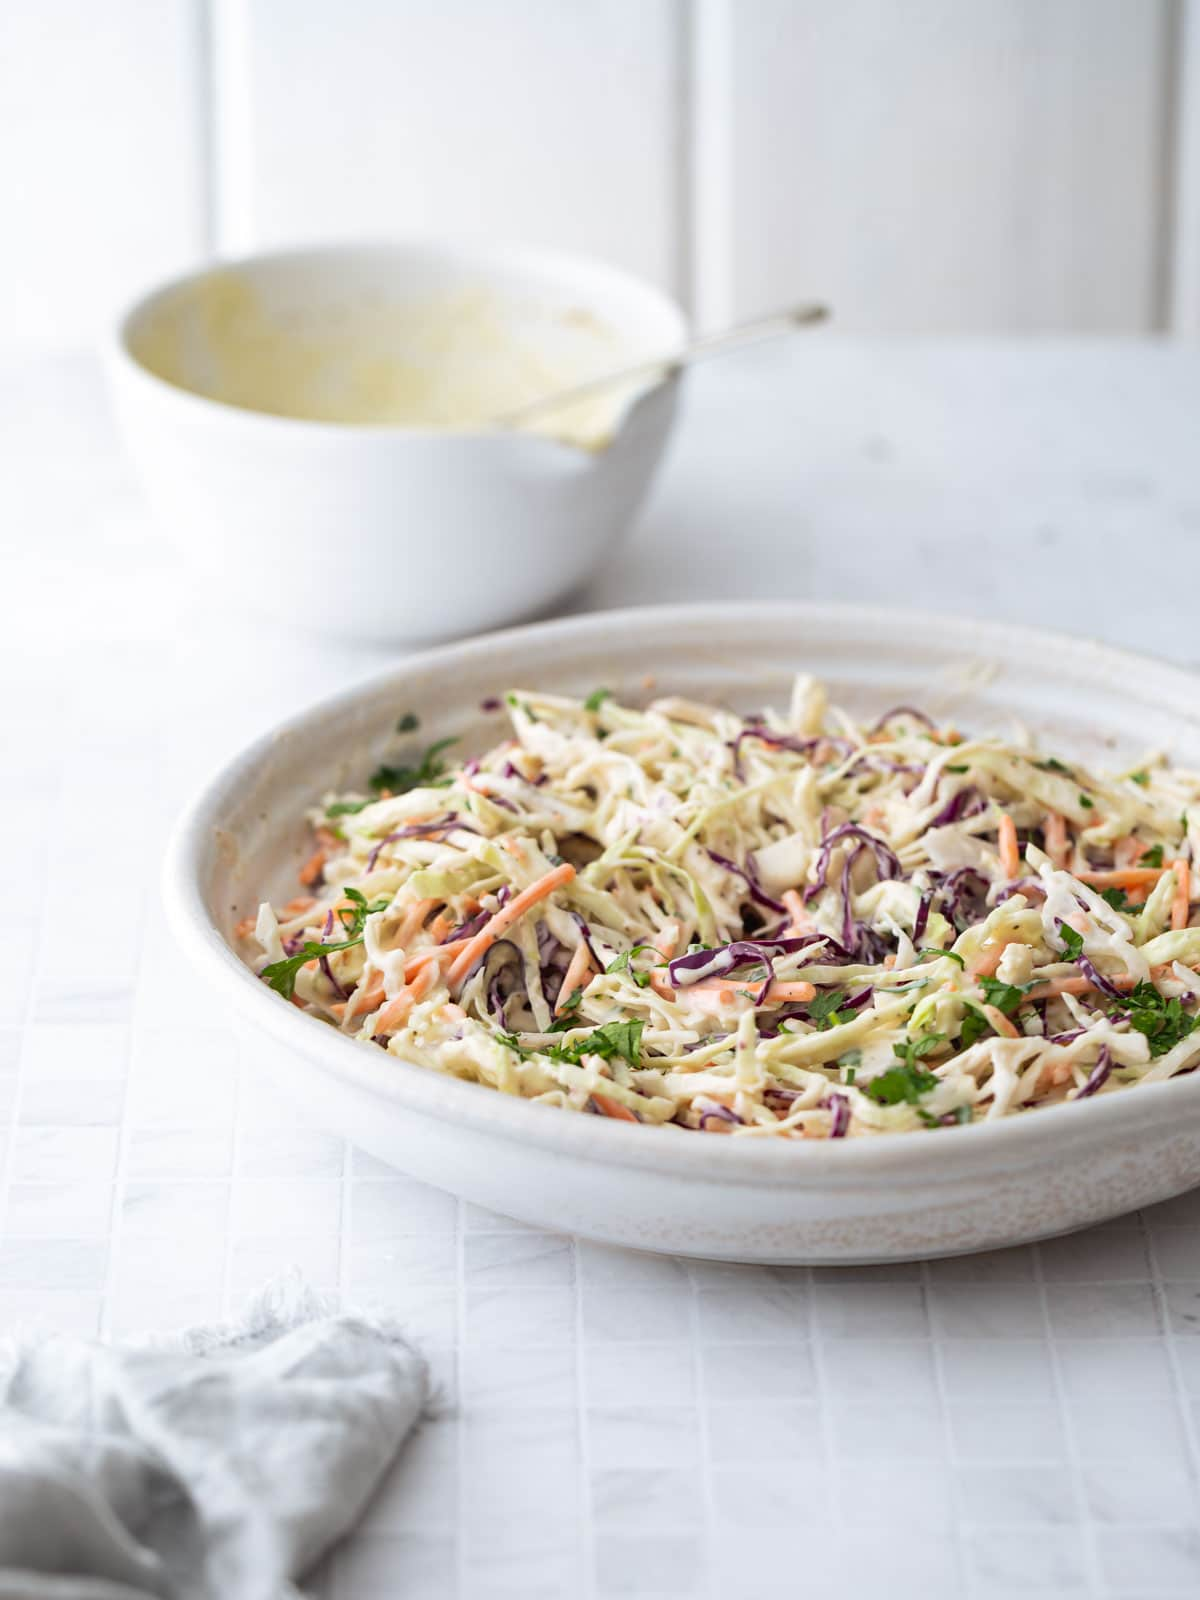 A table setting with a large bowl of shredded salad.